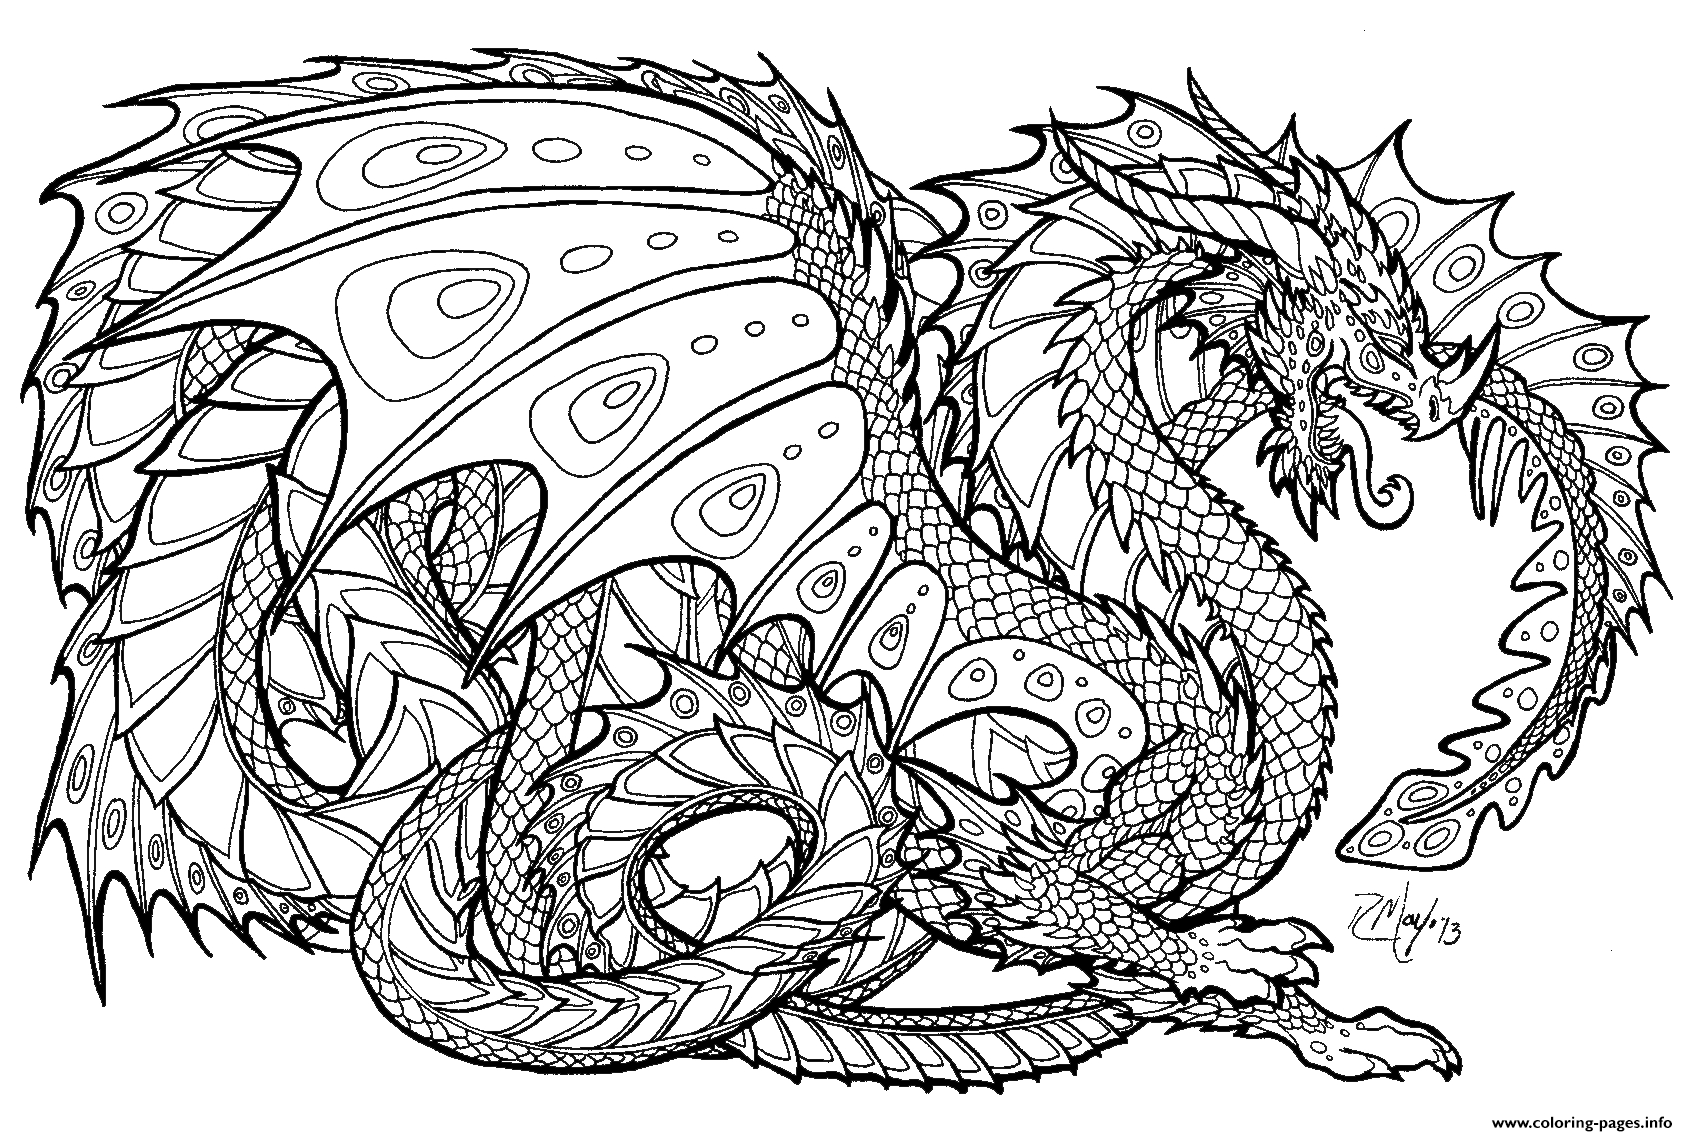 Print Realistic Dragon Chinese Dragon Coloring Pages | Adult - Free Printable Chinese Dragon Coloring Pages